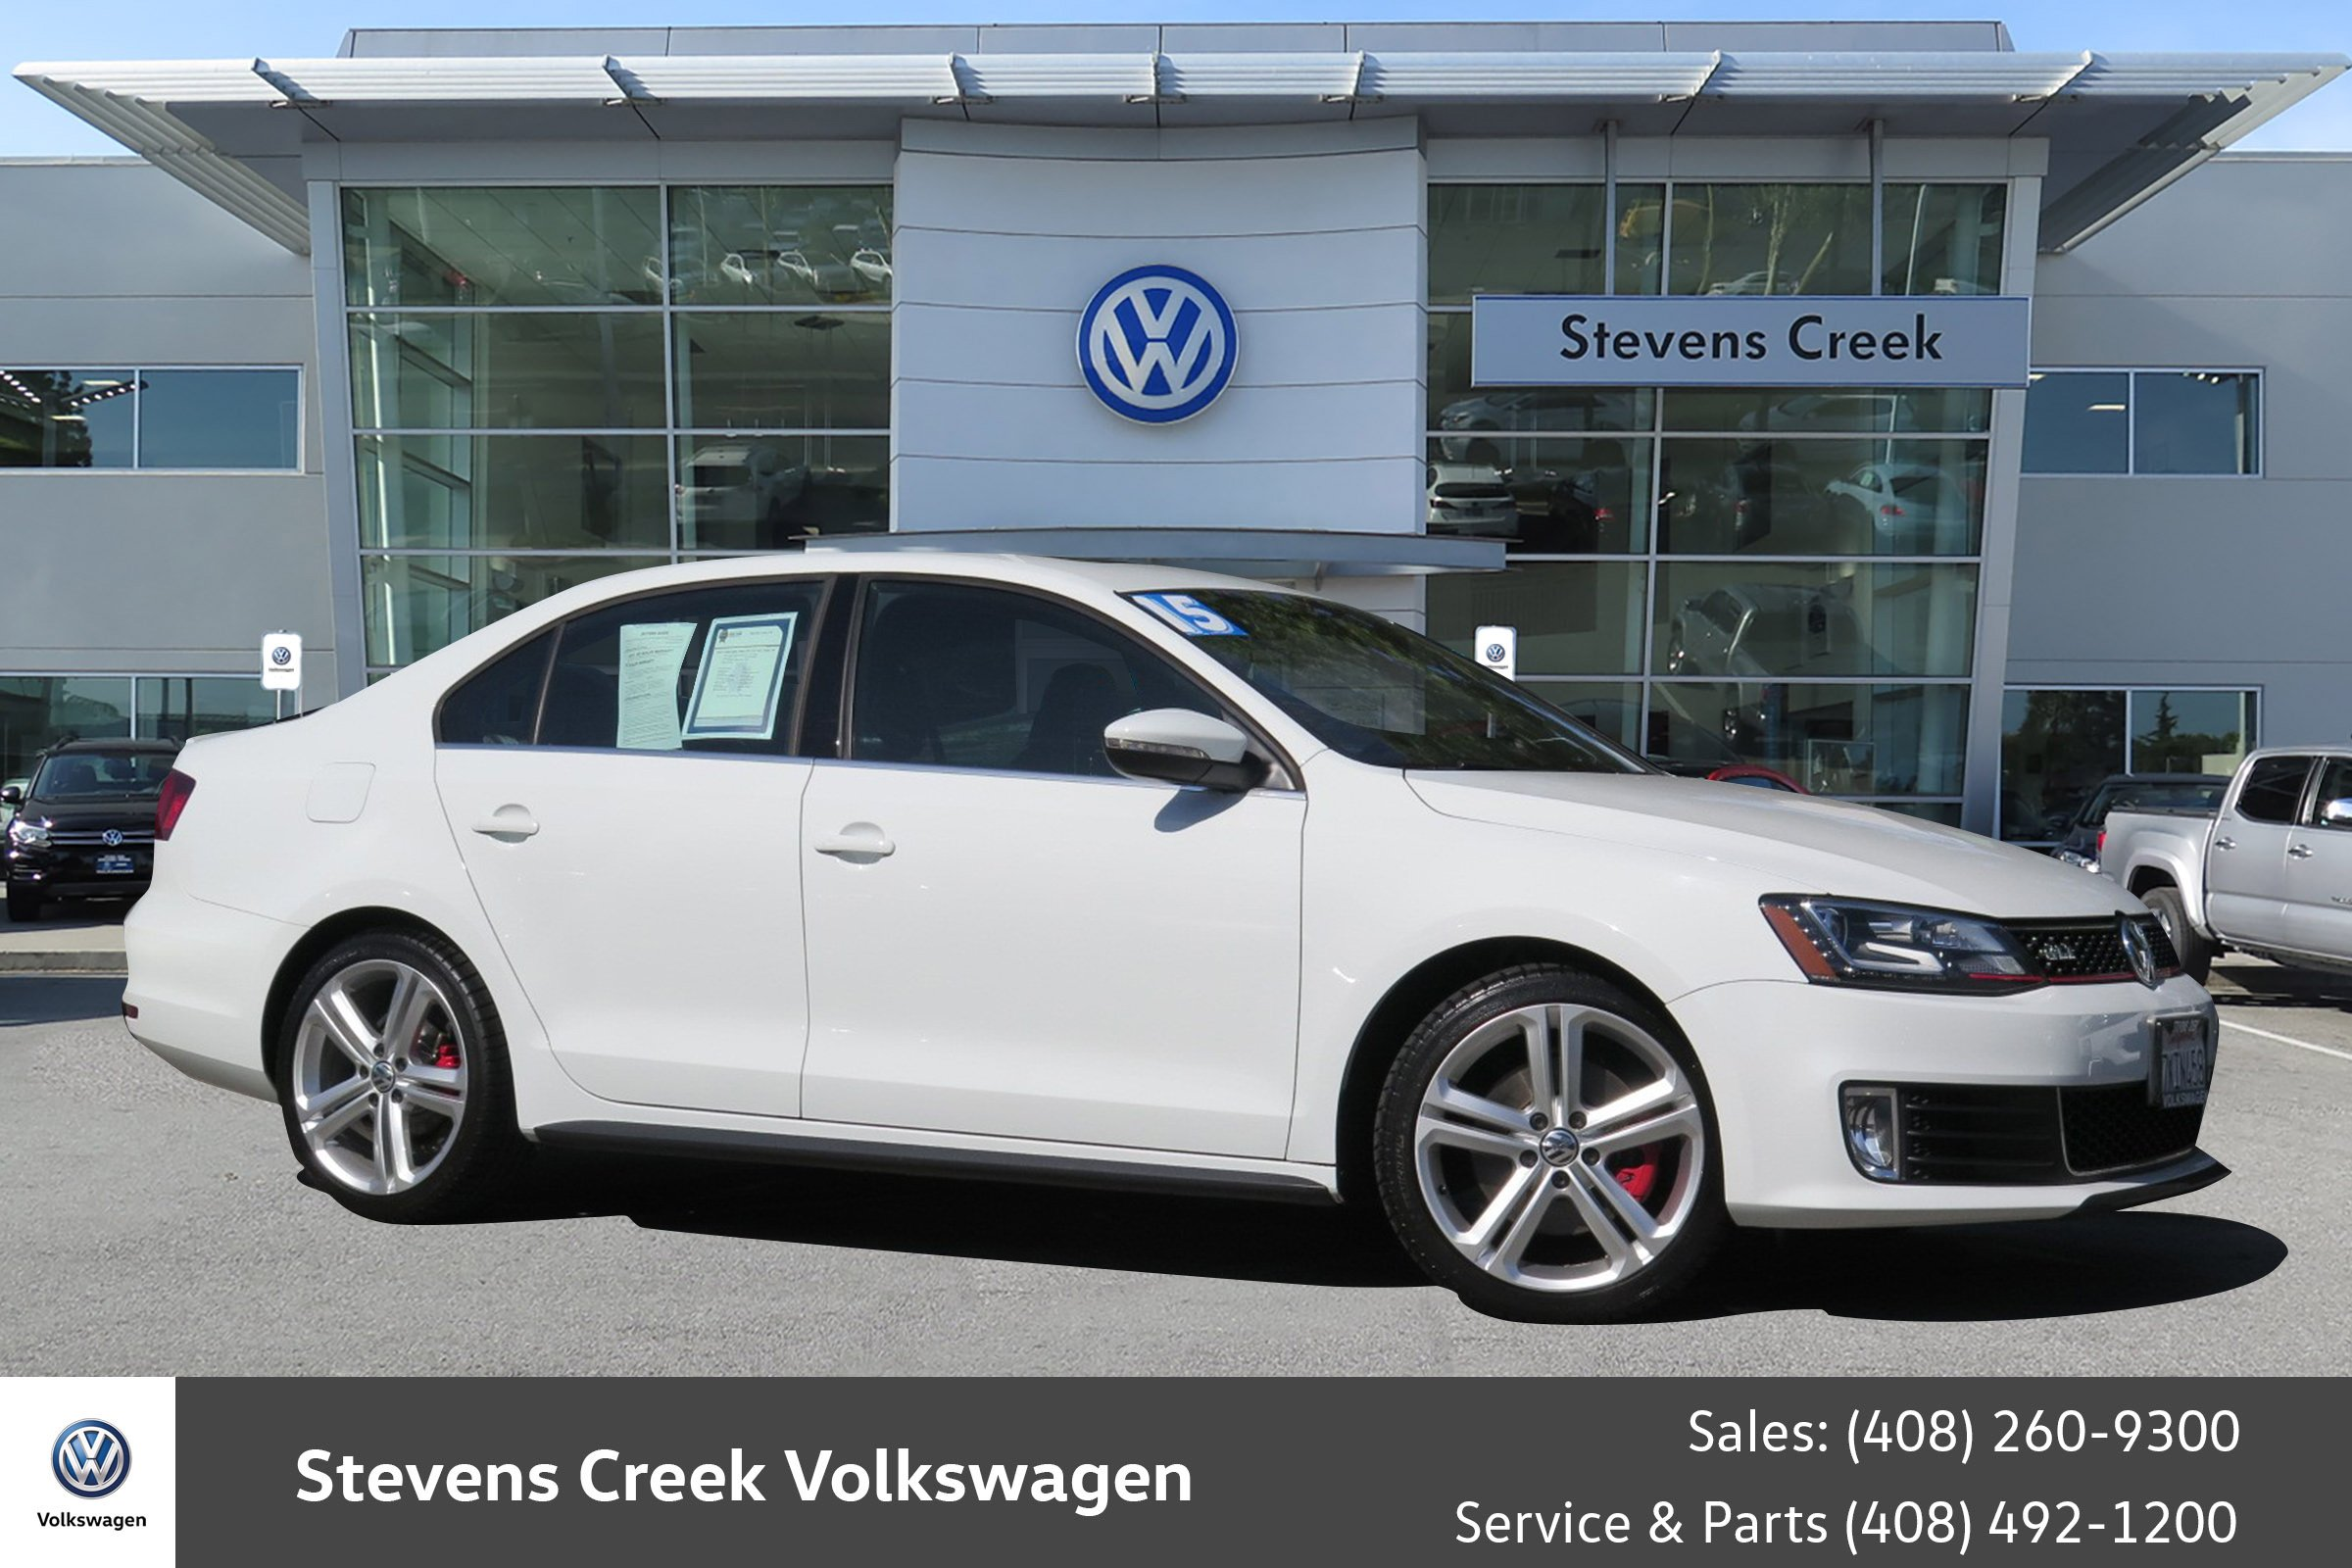 Pre Owned 2015 Volkswagen Jetta Sedan 2 0T GLI SEL 4dr Car in San